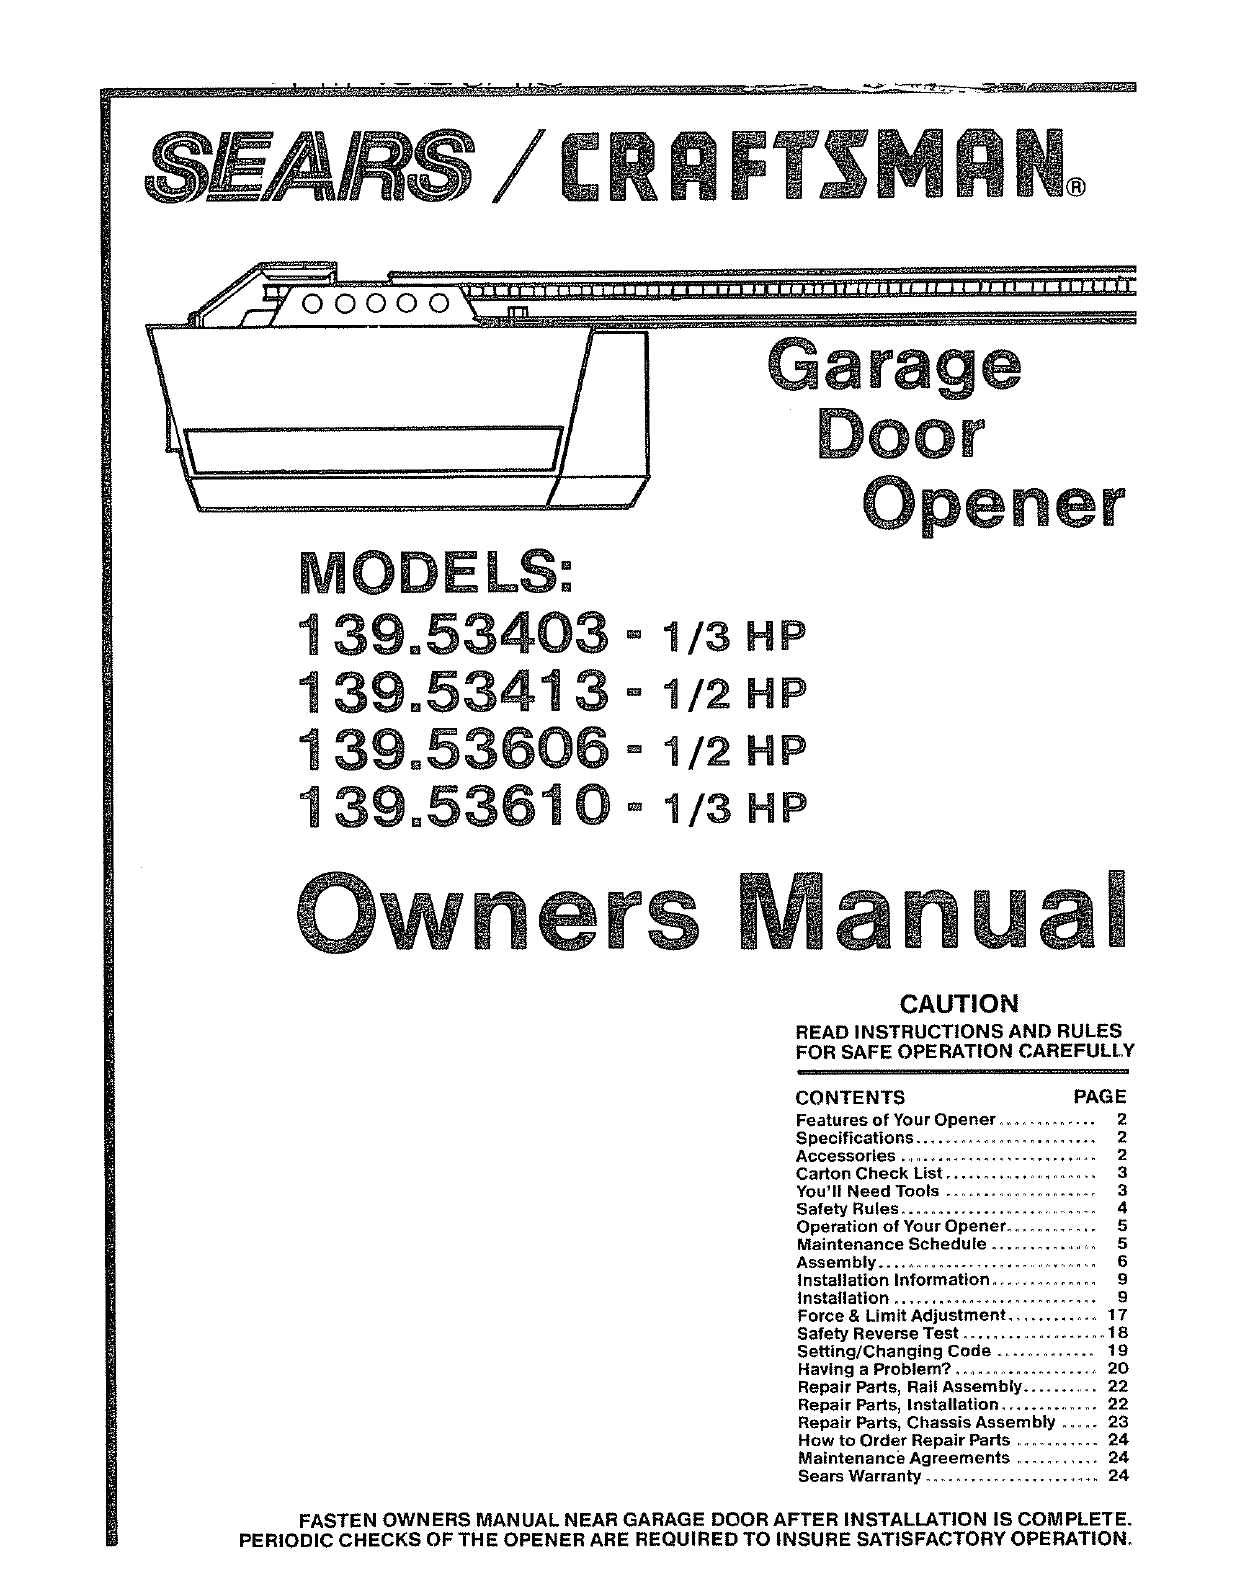 craftsman garage door opener 139 53403 user guide manualsonline com craftsman 139 53403 garage door opener user manual